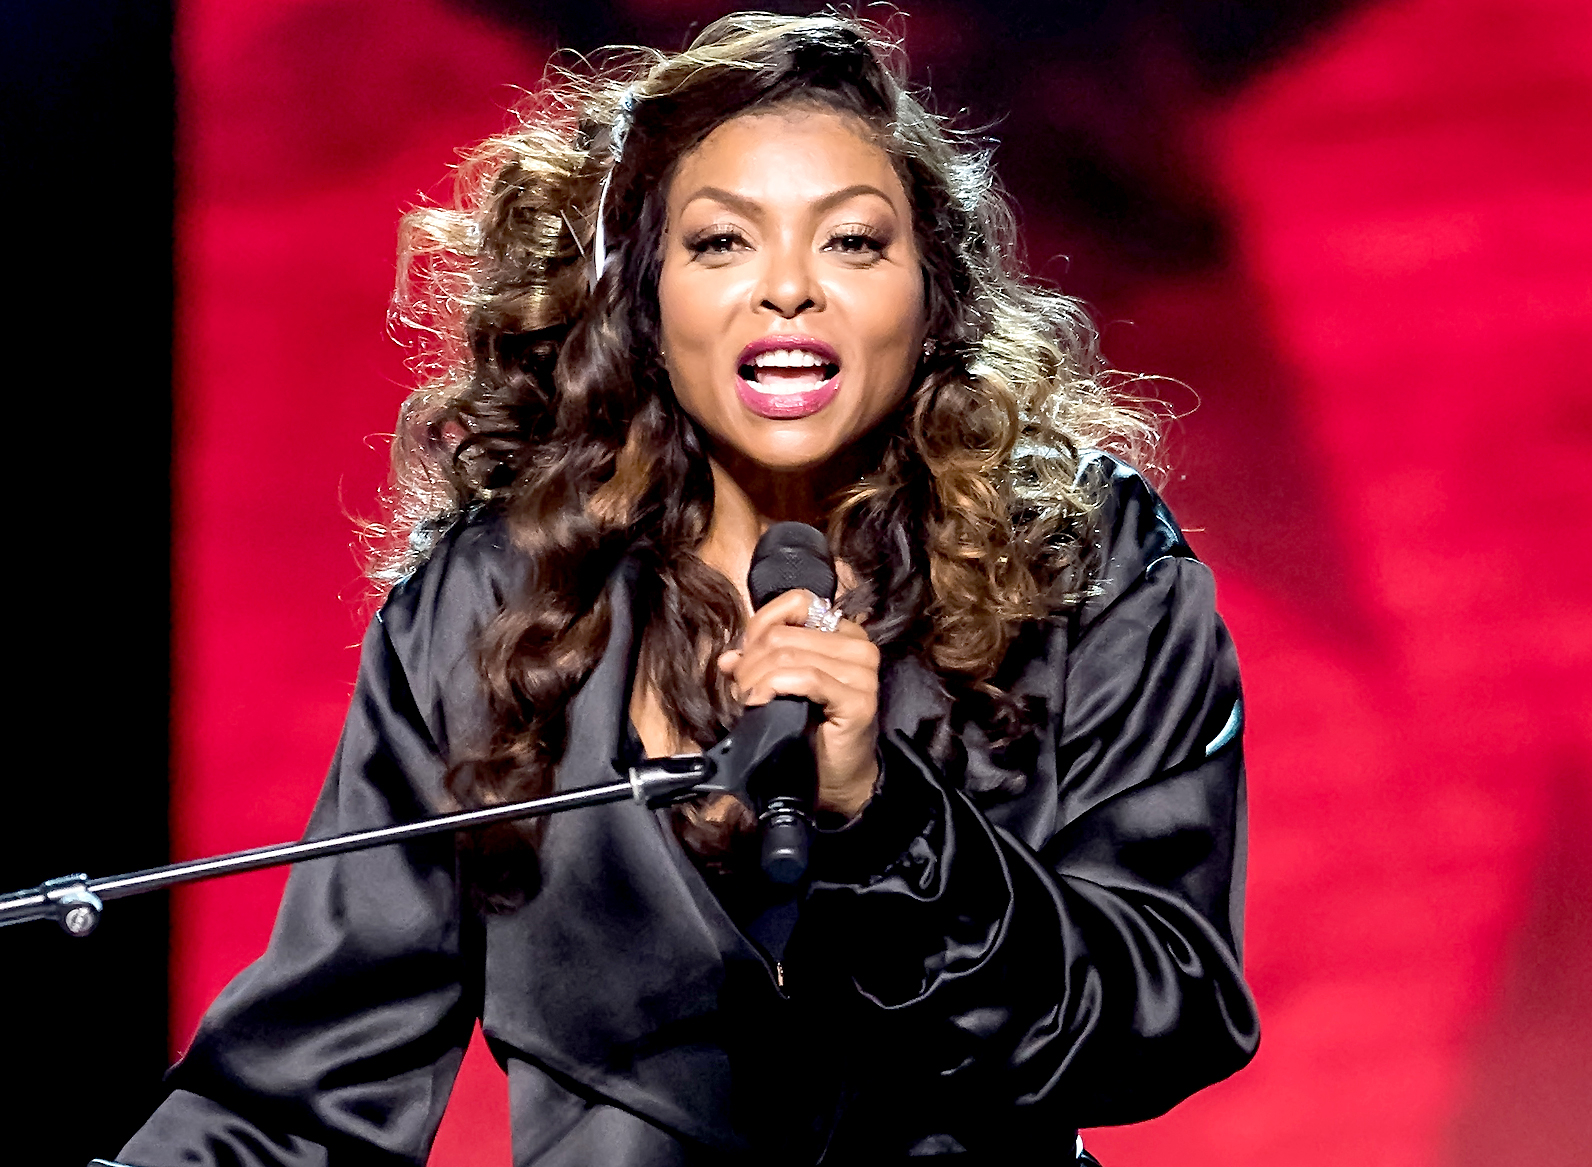 Taraji P. Henson performs onstage during Black Girls Rock! 2017 at New Jersey Performing Arts Center on August 5, 2017 in Newark, New Jersey.